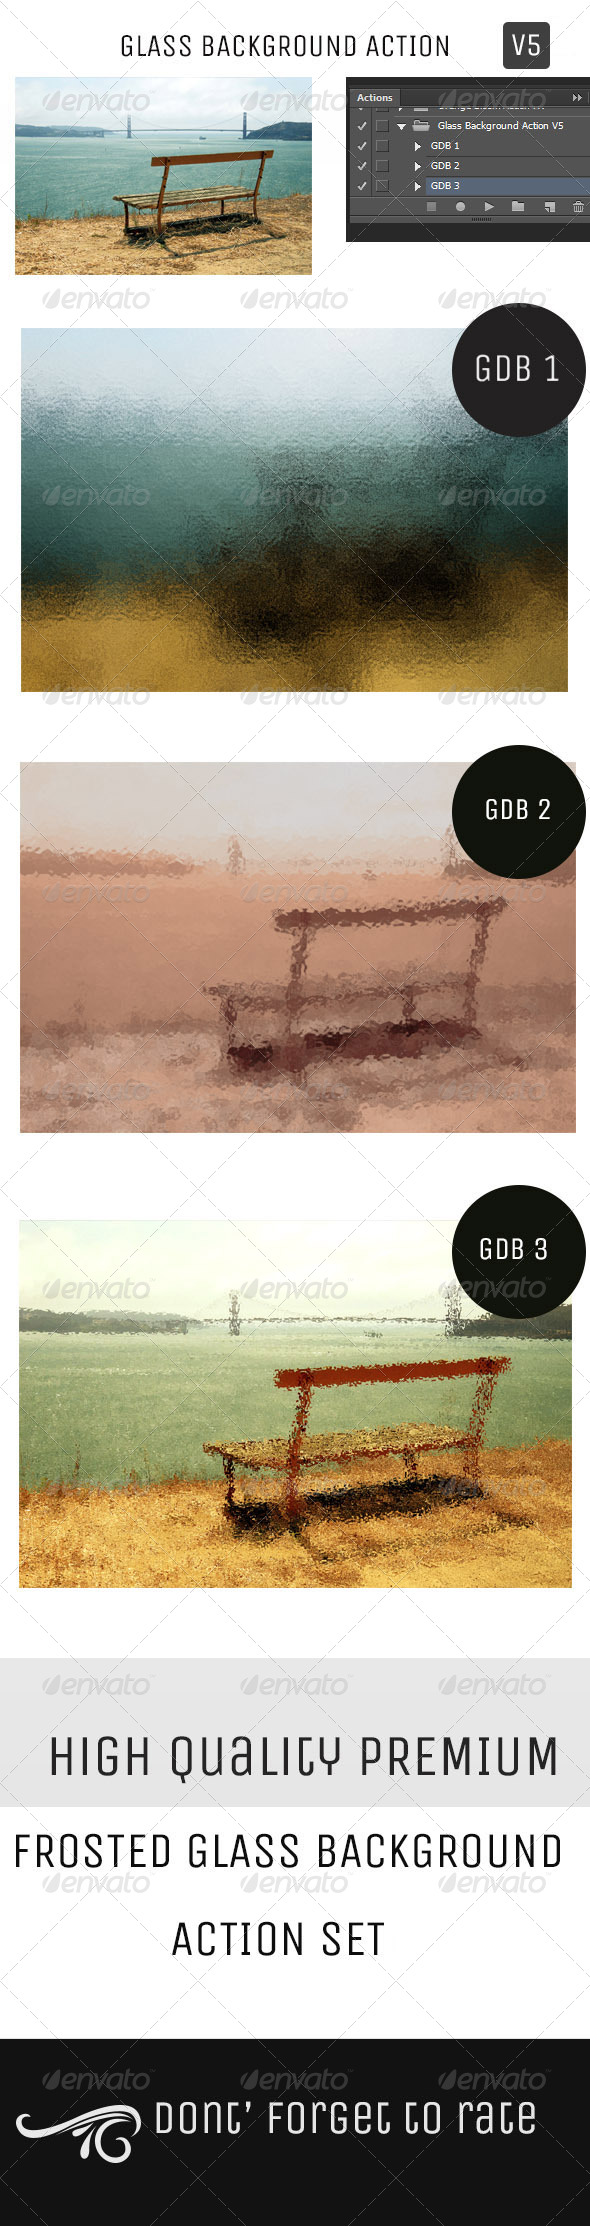 GraphicRiver Glass Background Action Set V5 5150978